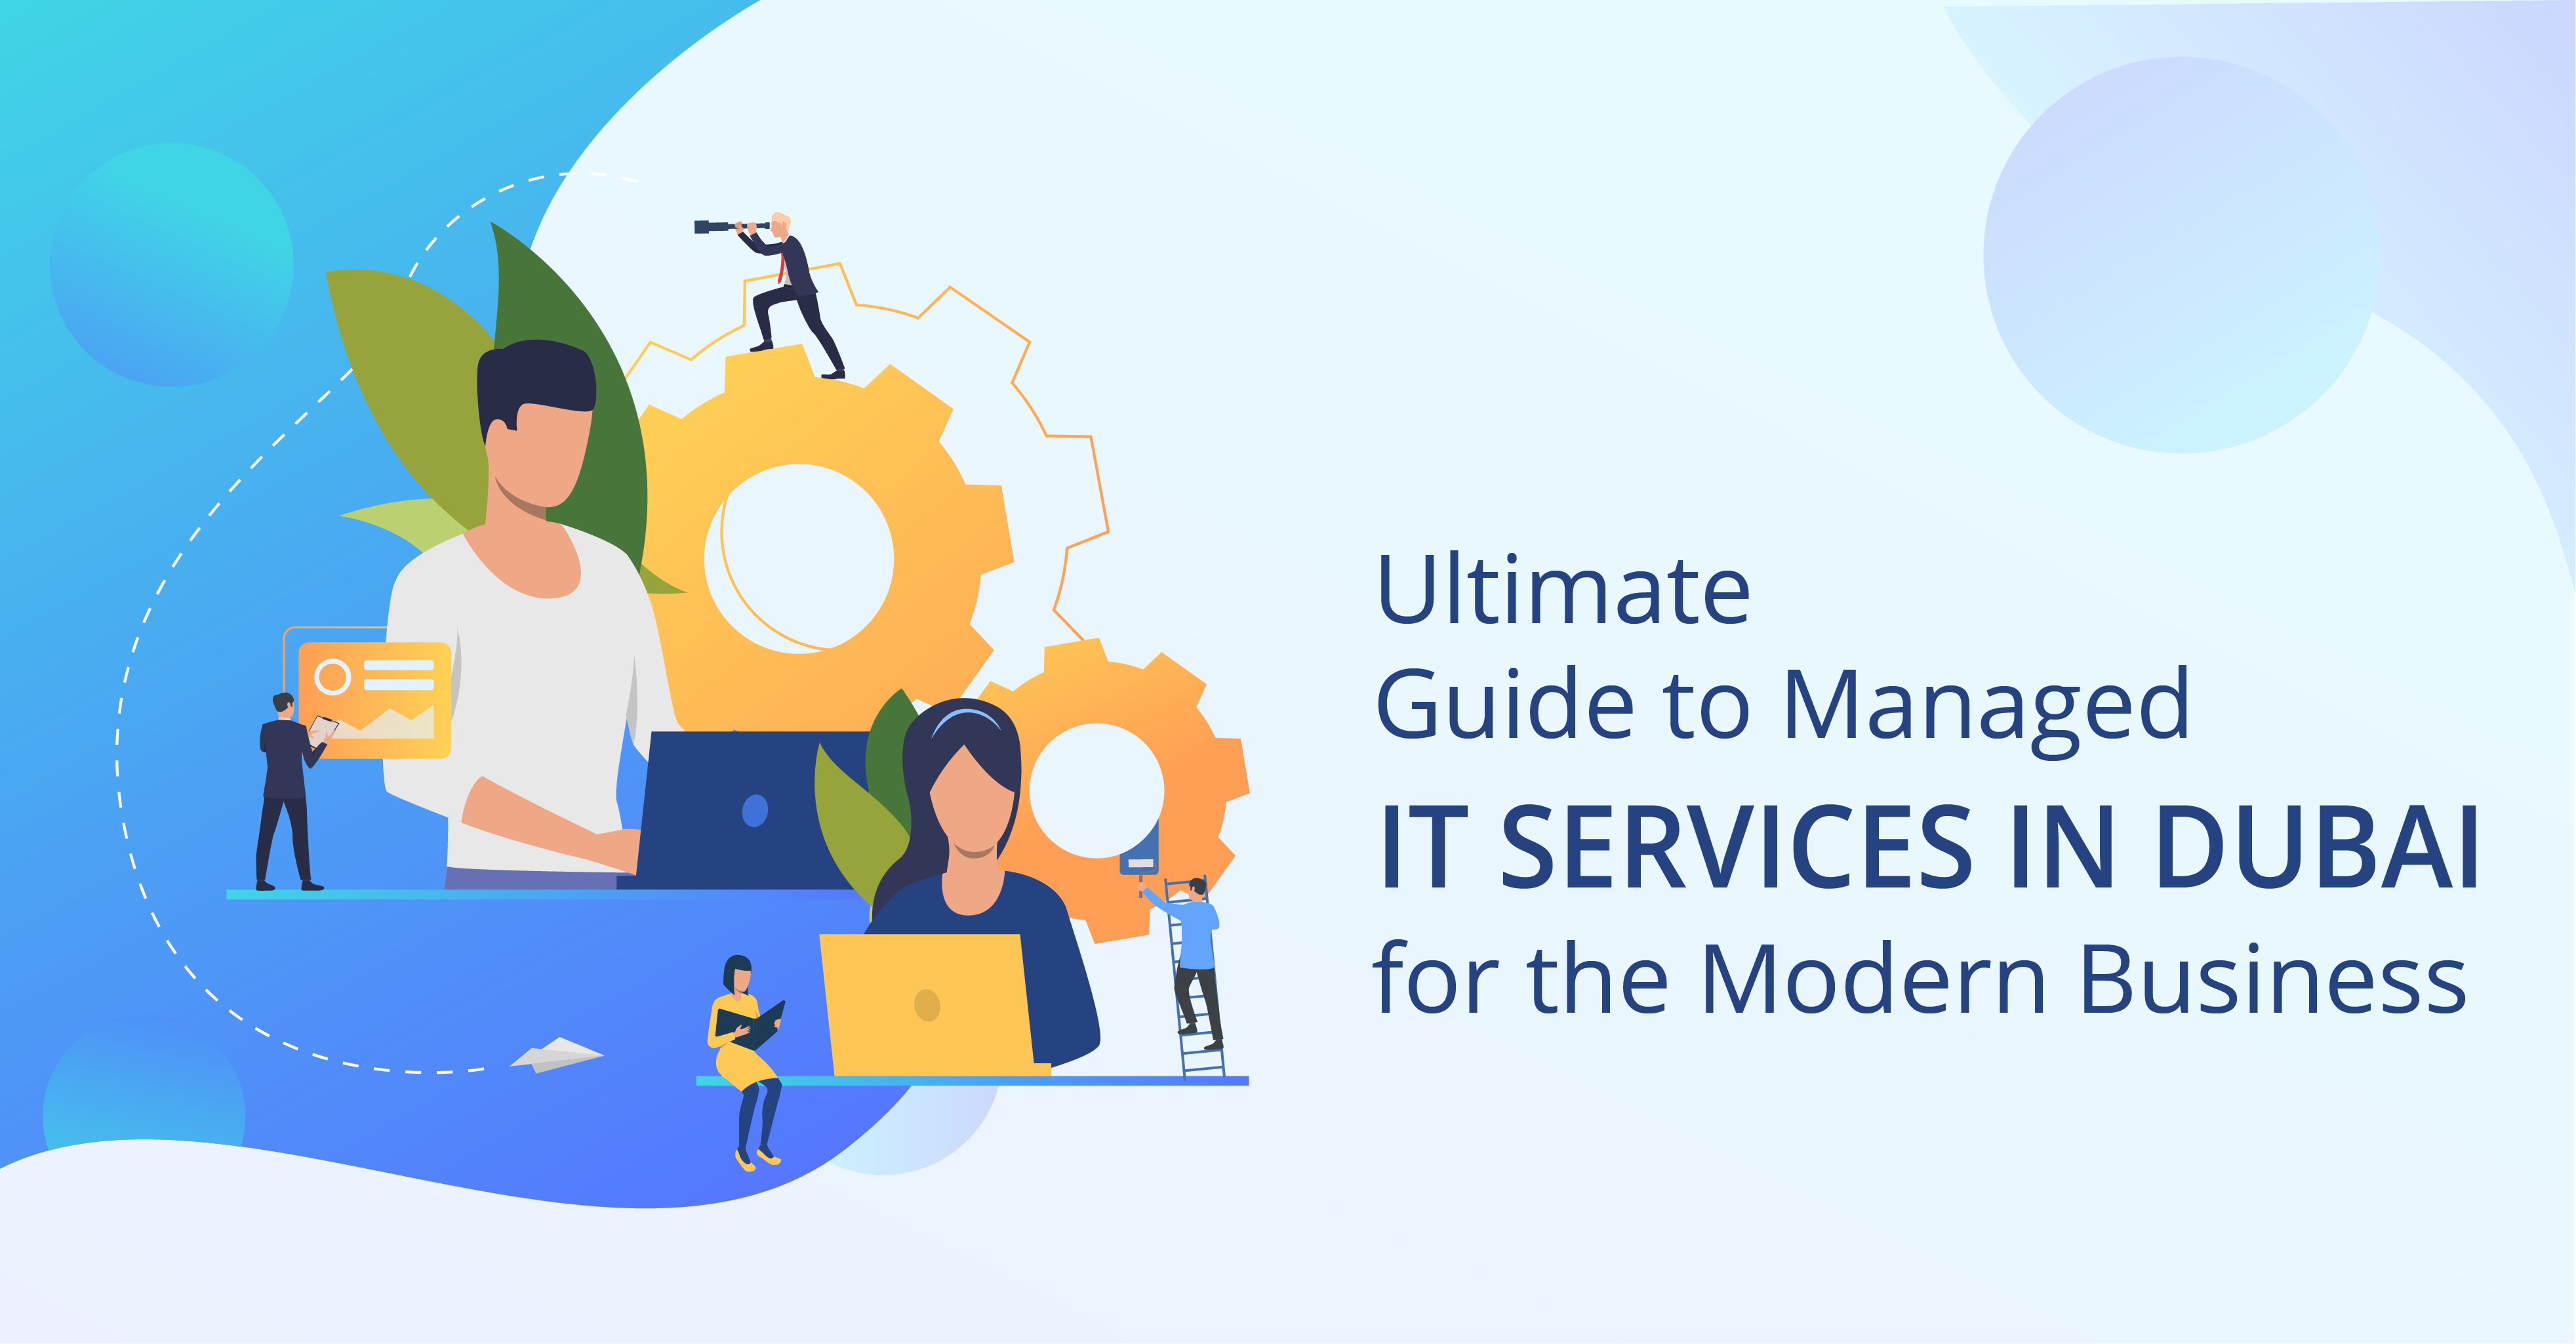 ultimate-guide-to-managed-it-services-in-dubai-for-the-modern-business